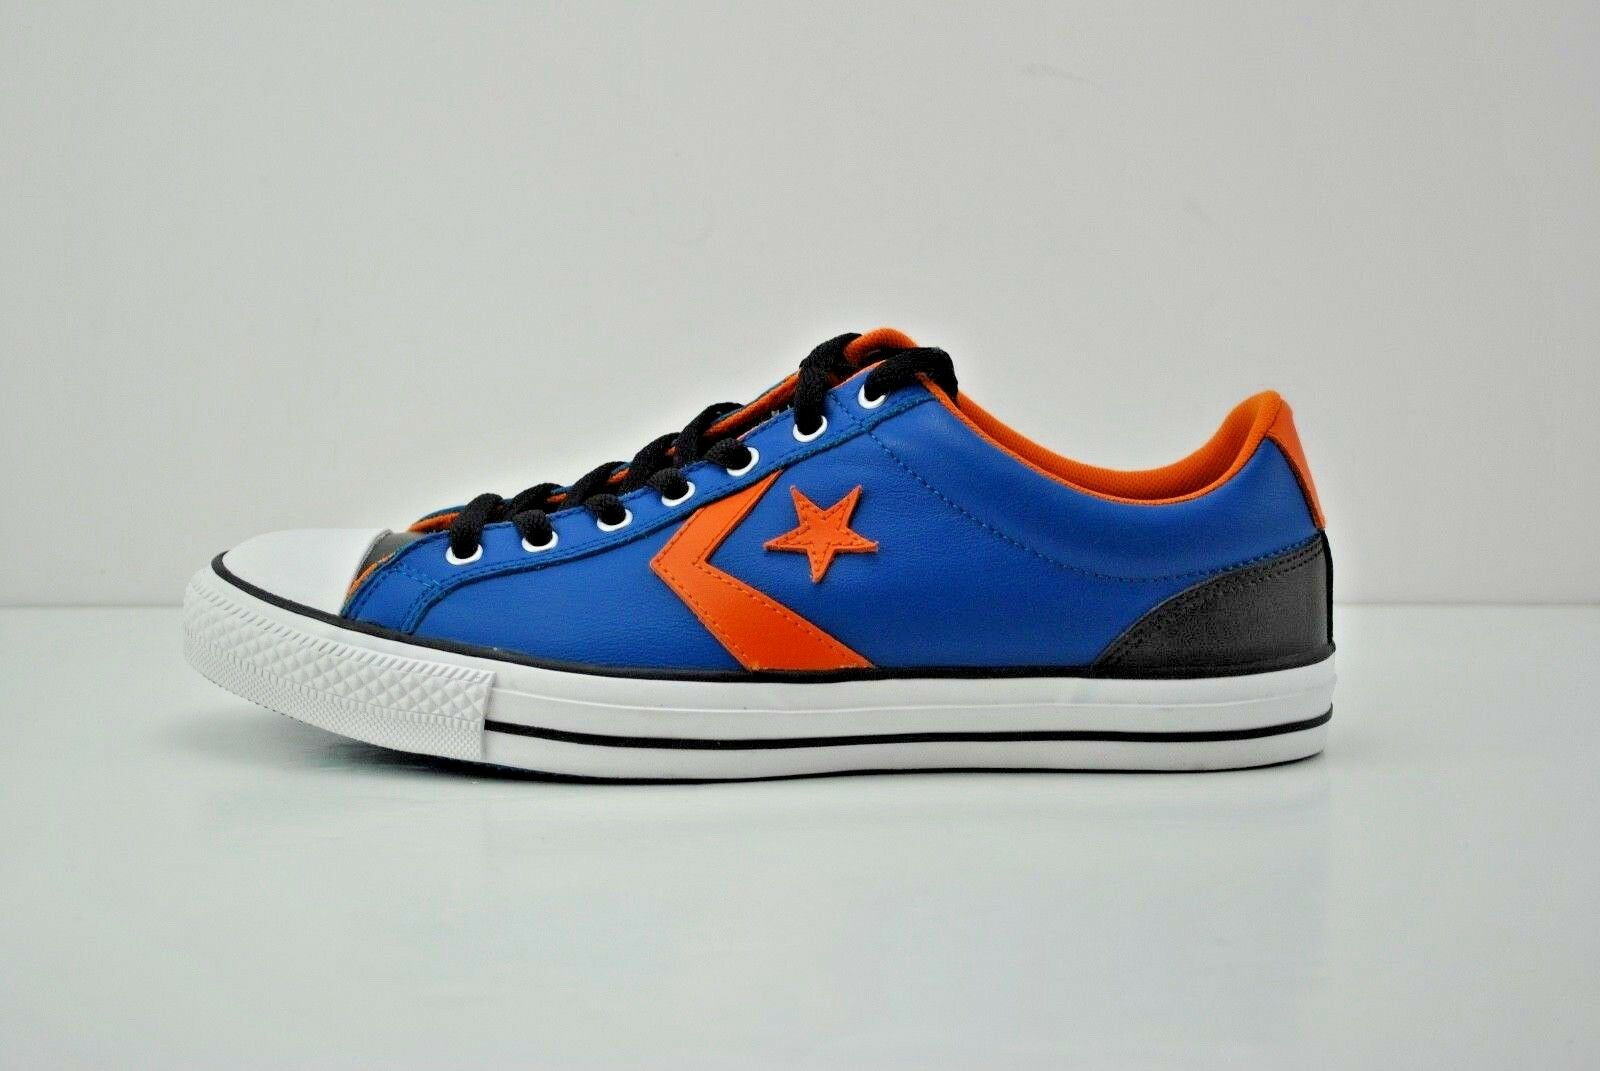 Mens Converse Chuck Taylor All Star Low shoes Size 10 bluee orange White 139868C